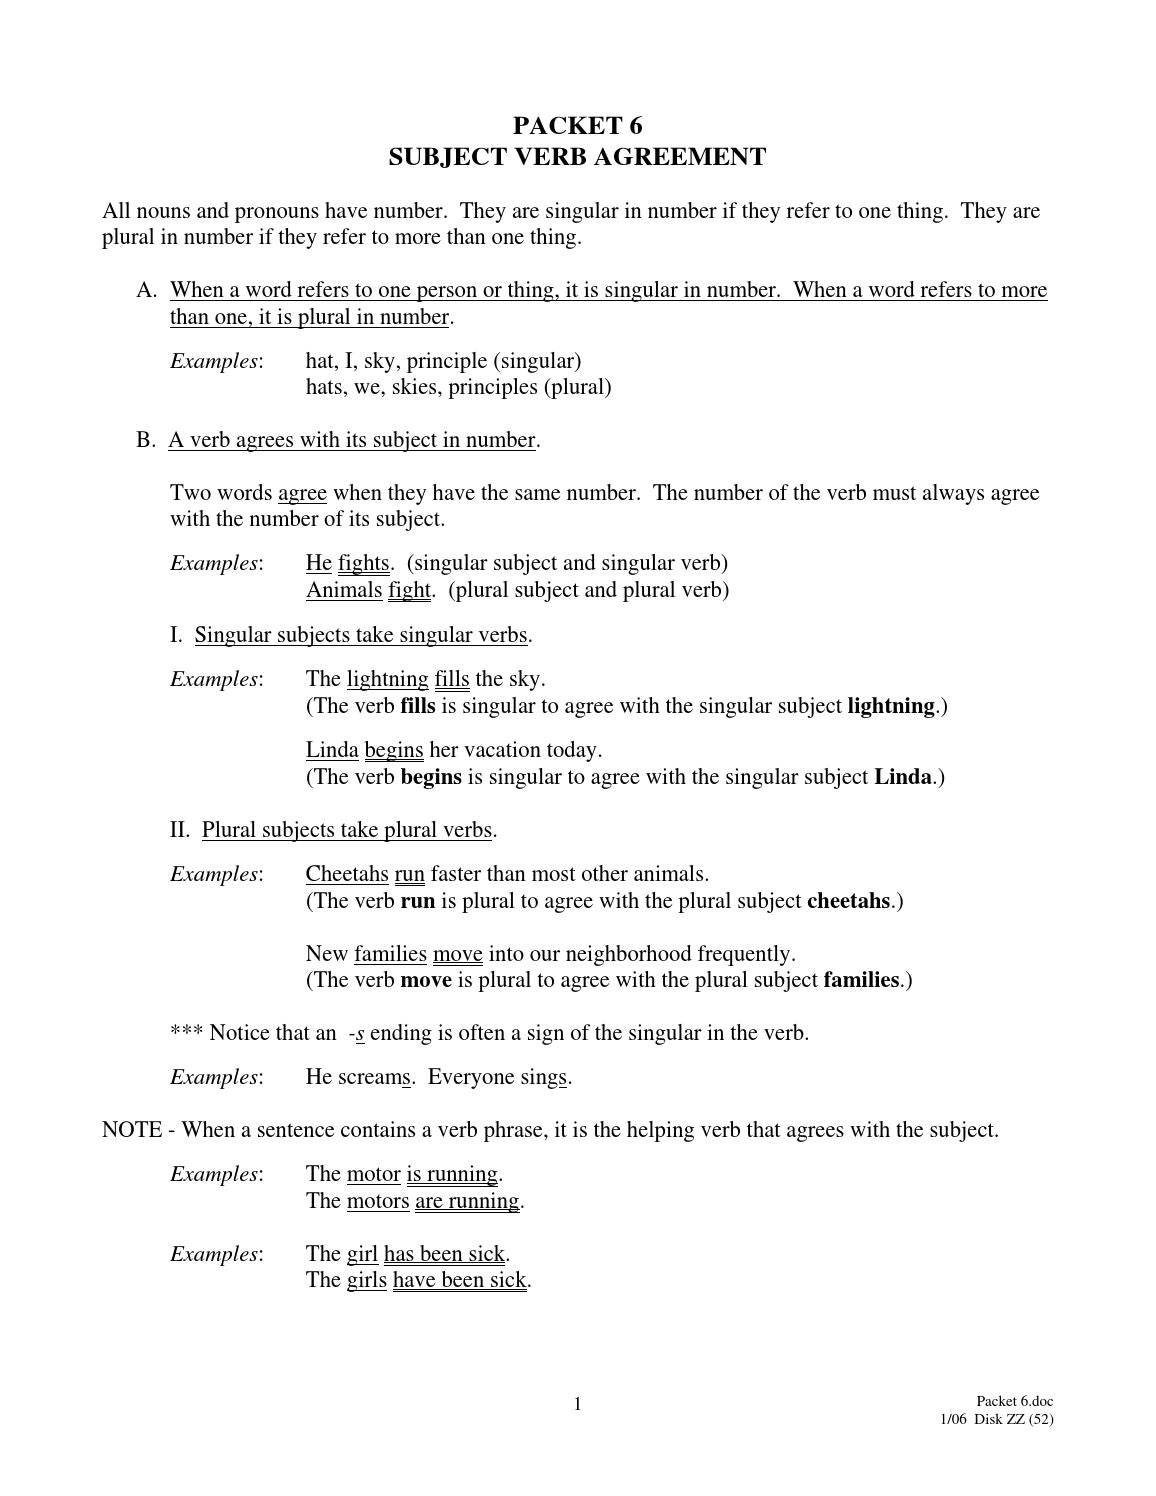 Packet6 subject verb agreement by hostoswc issuu reviewsmspy